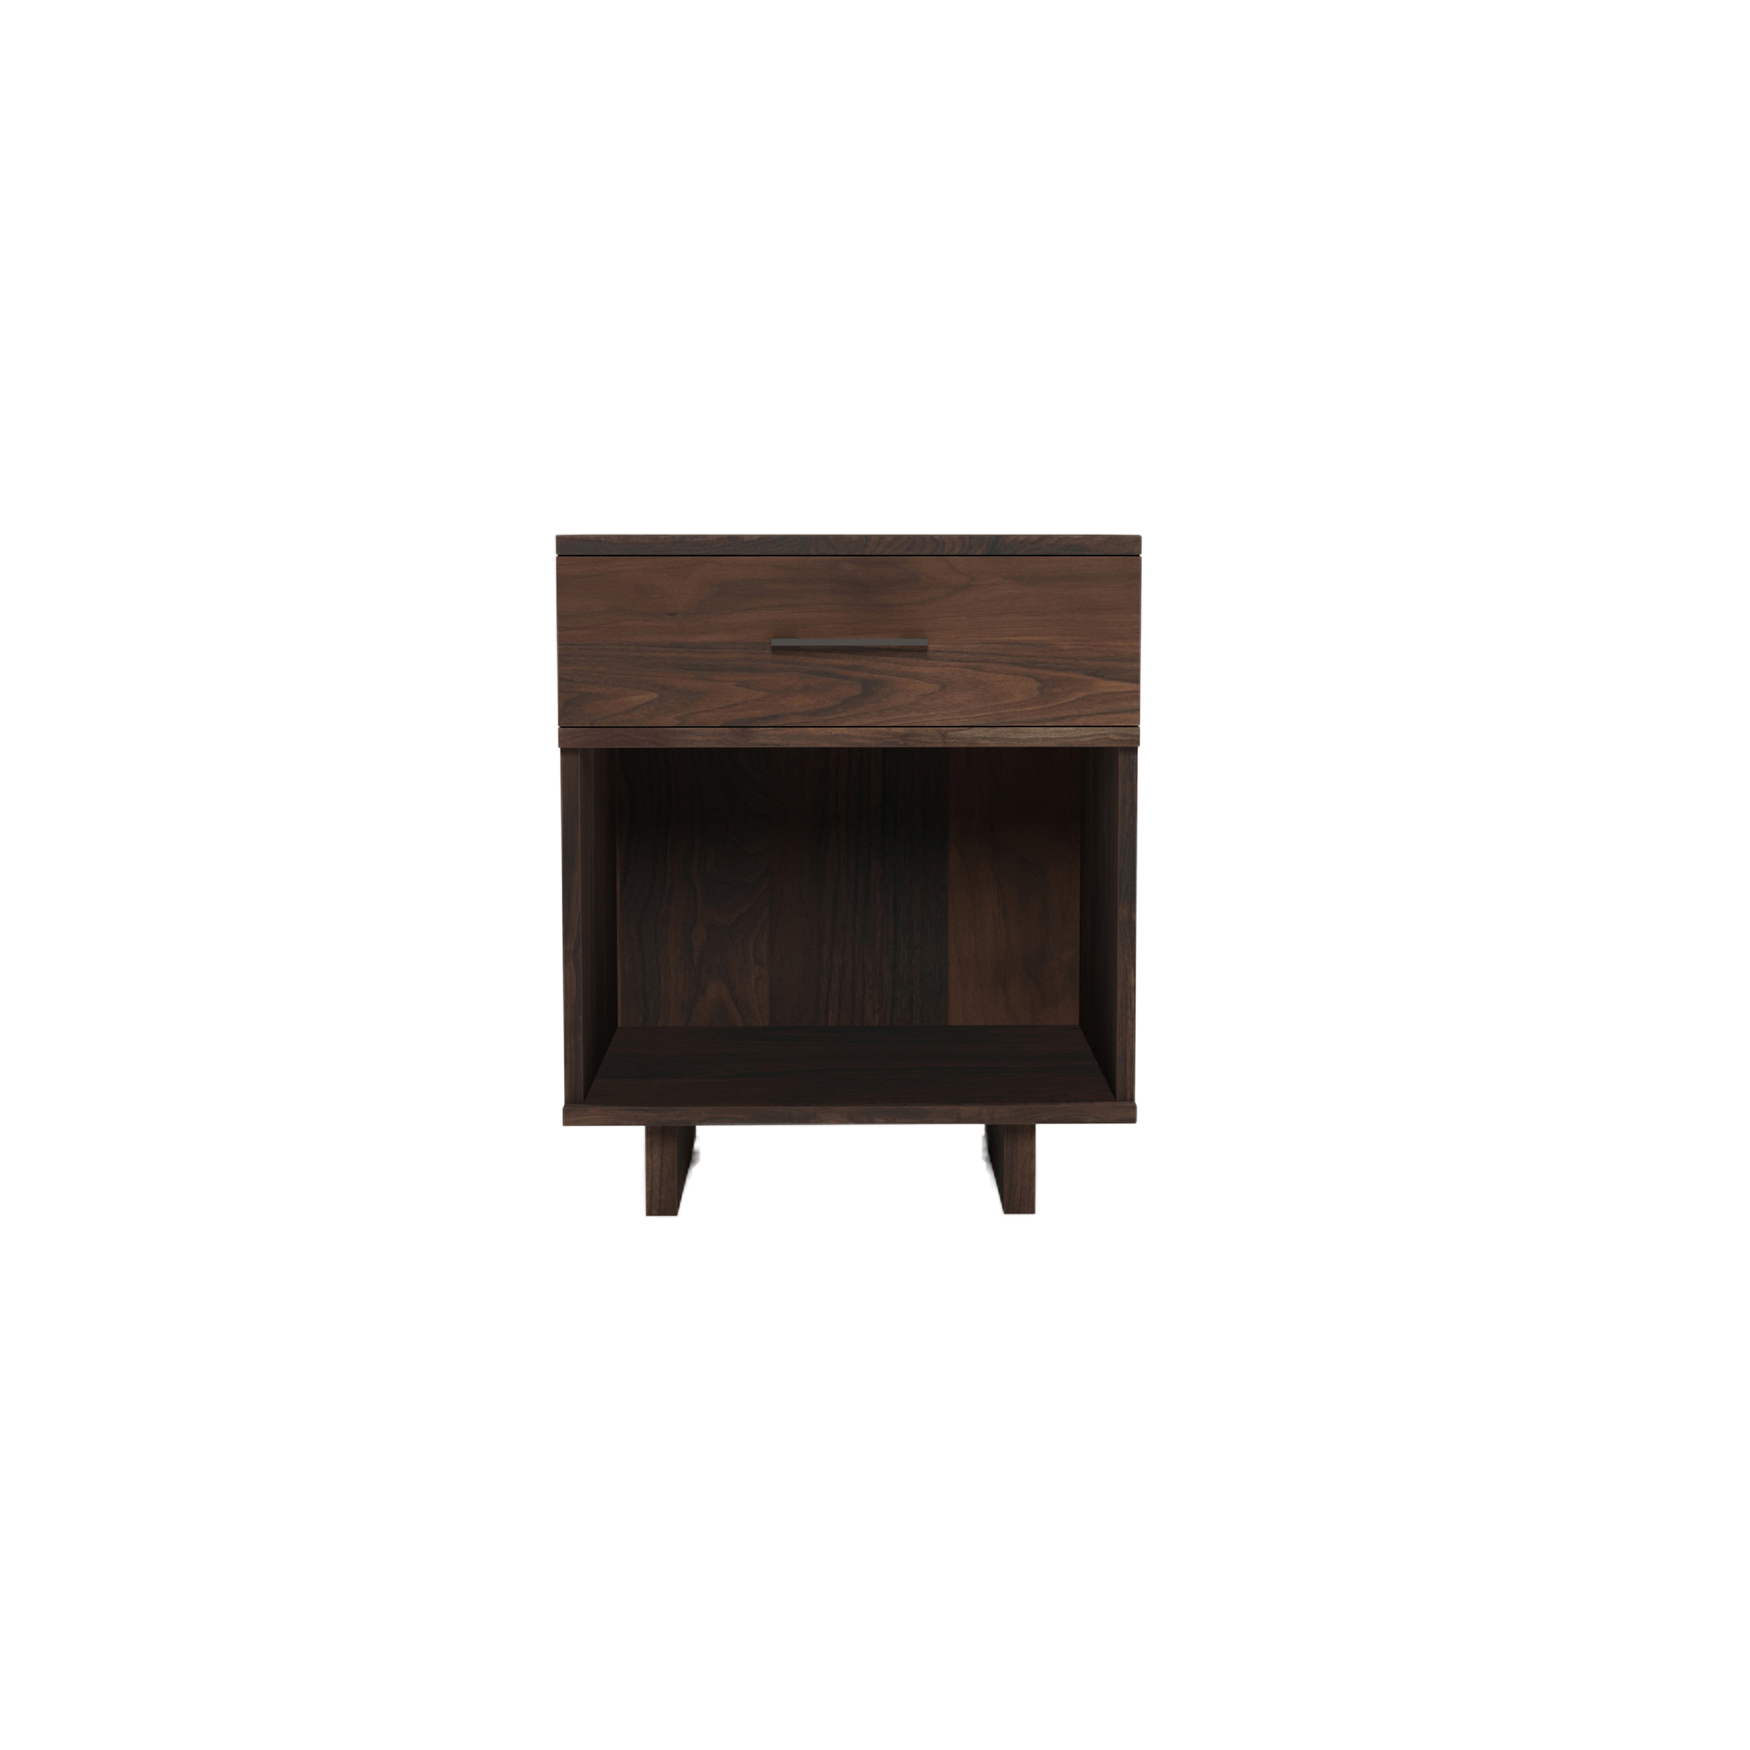 Series 252 Small Bedside Table – Walnut